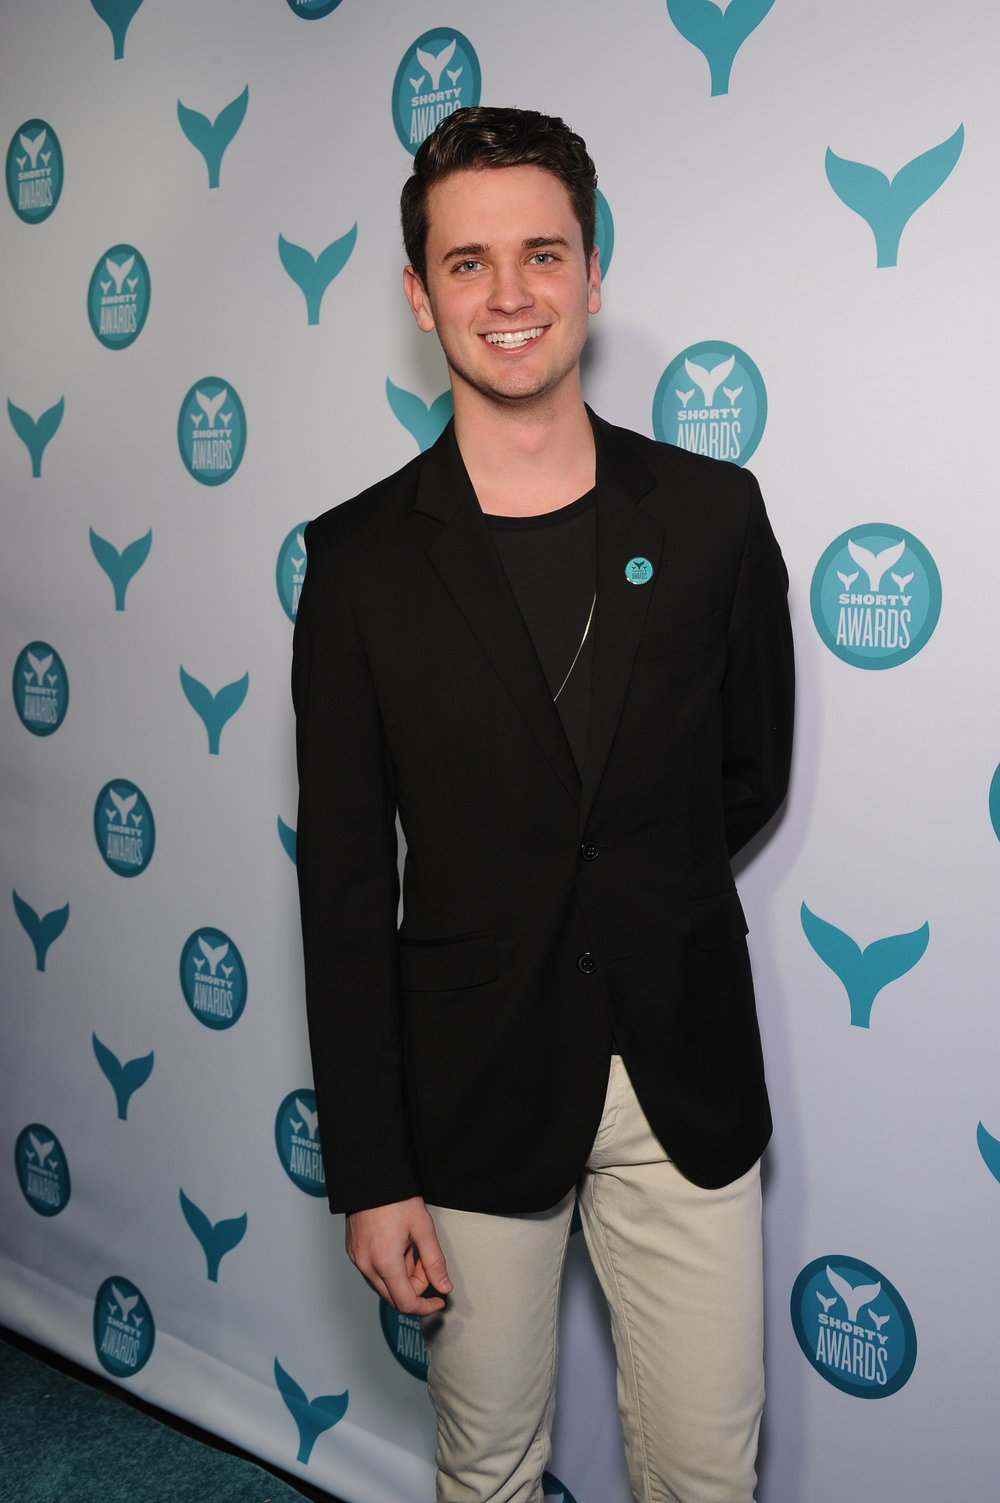 TyAutry_ShortyAwards_Actor_Model_Atlanta_NYC.jpg